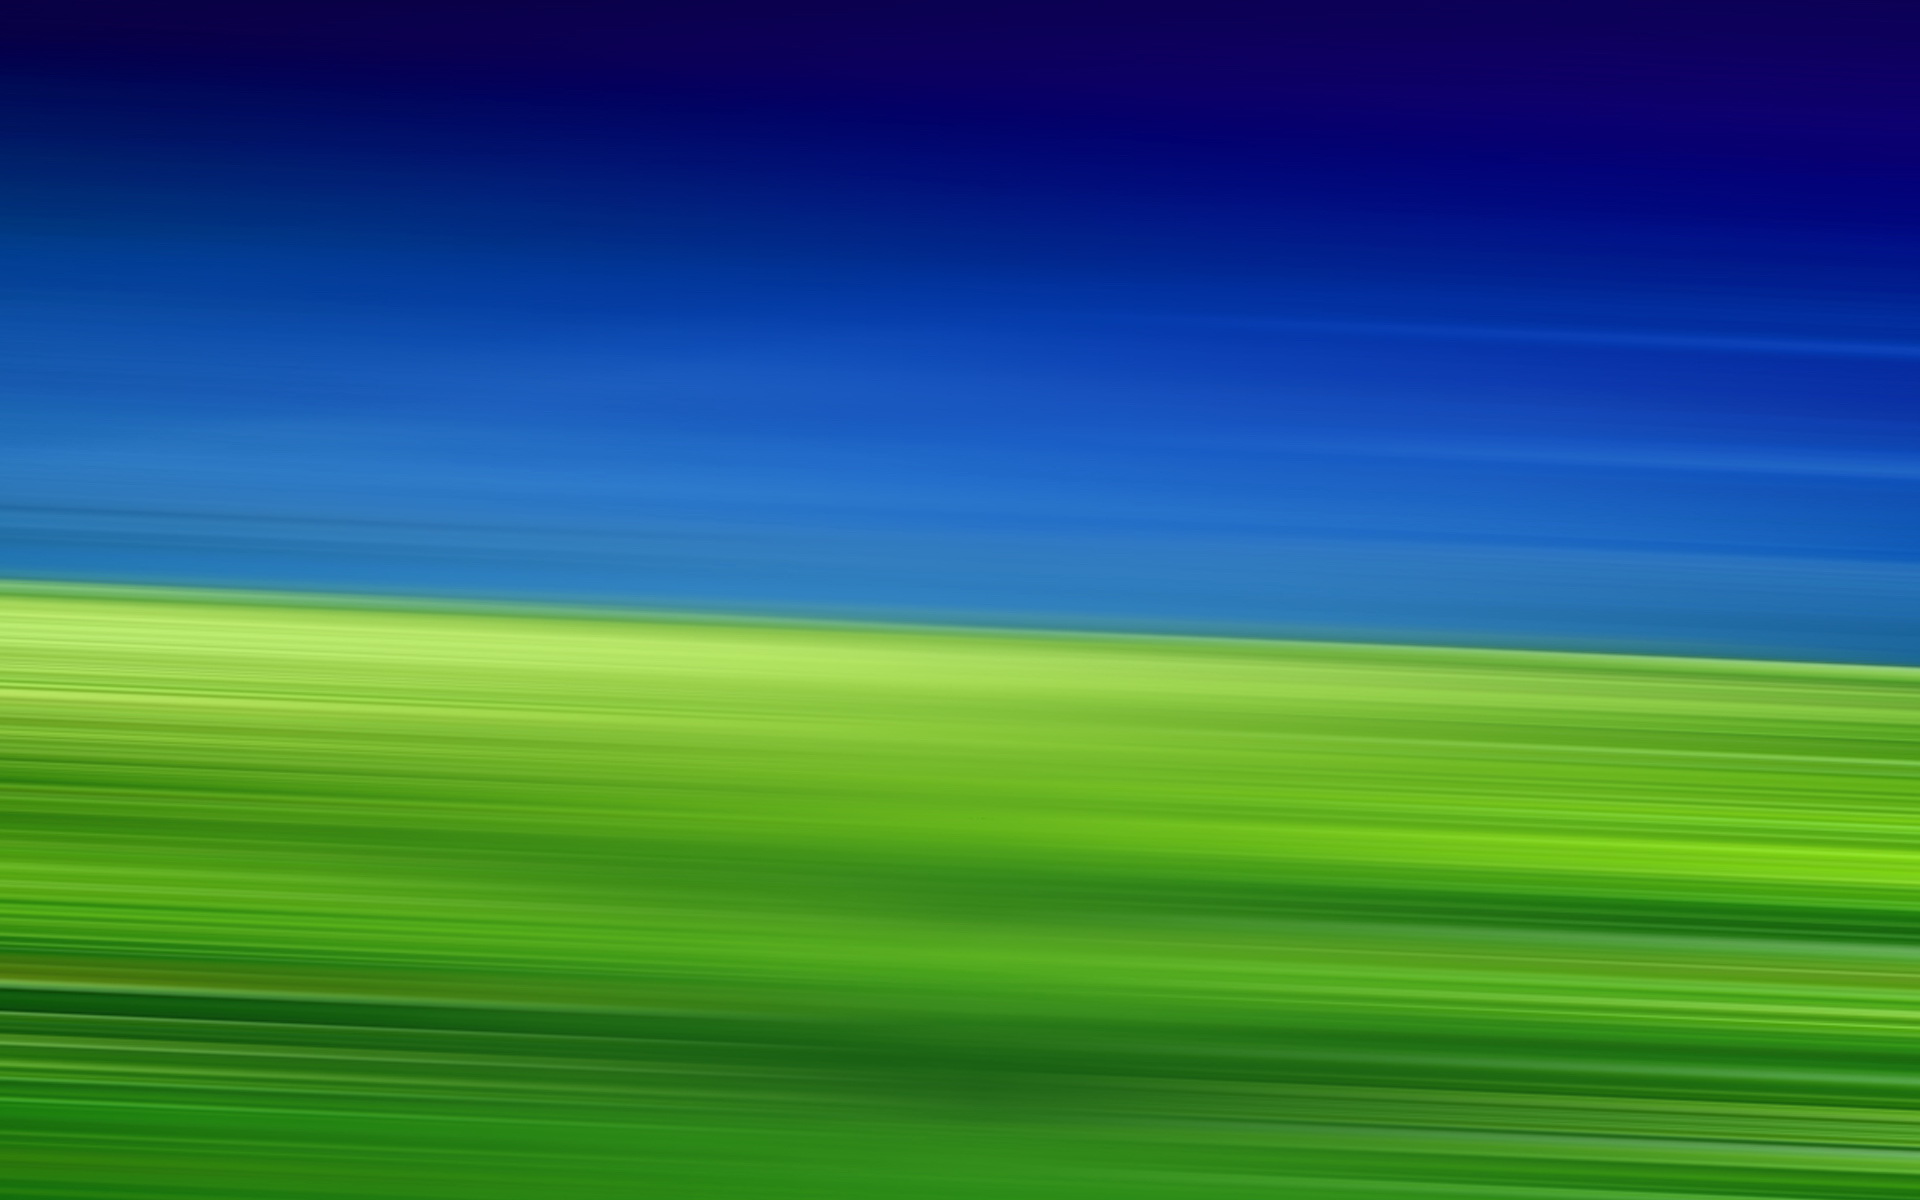 1920x1200 green and dark blue desktop pc and mac wallpaper